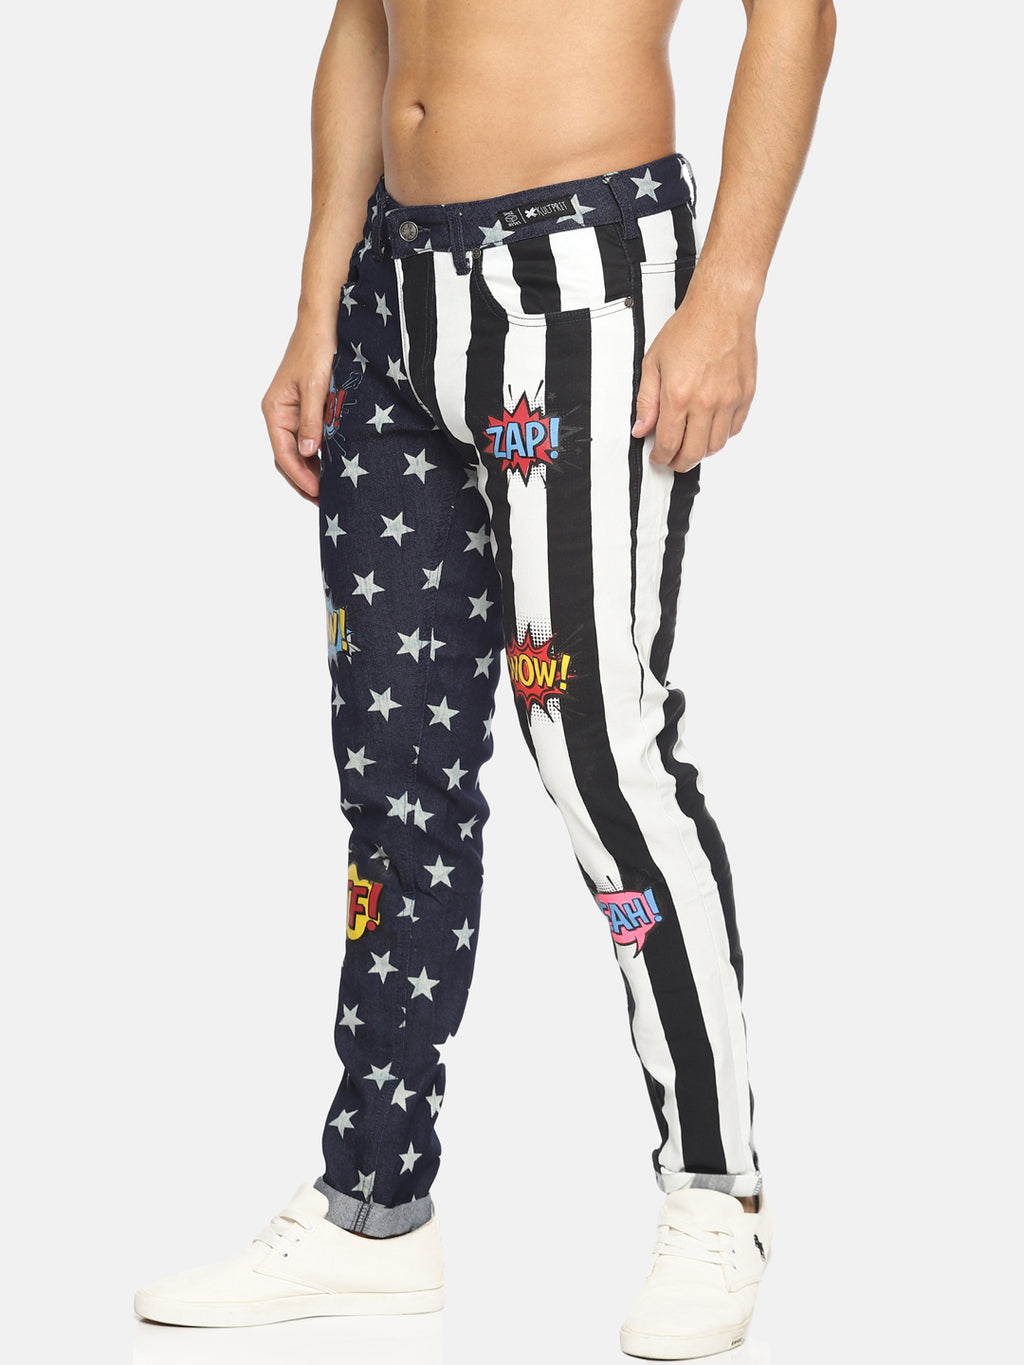 Kultprit Jogger Style Trouser With Print & Drawstring